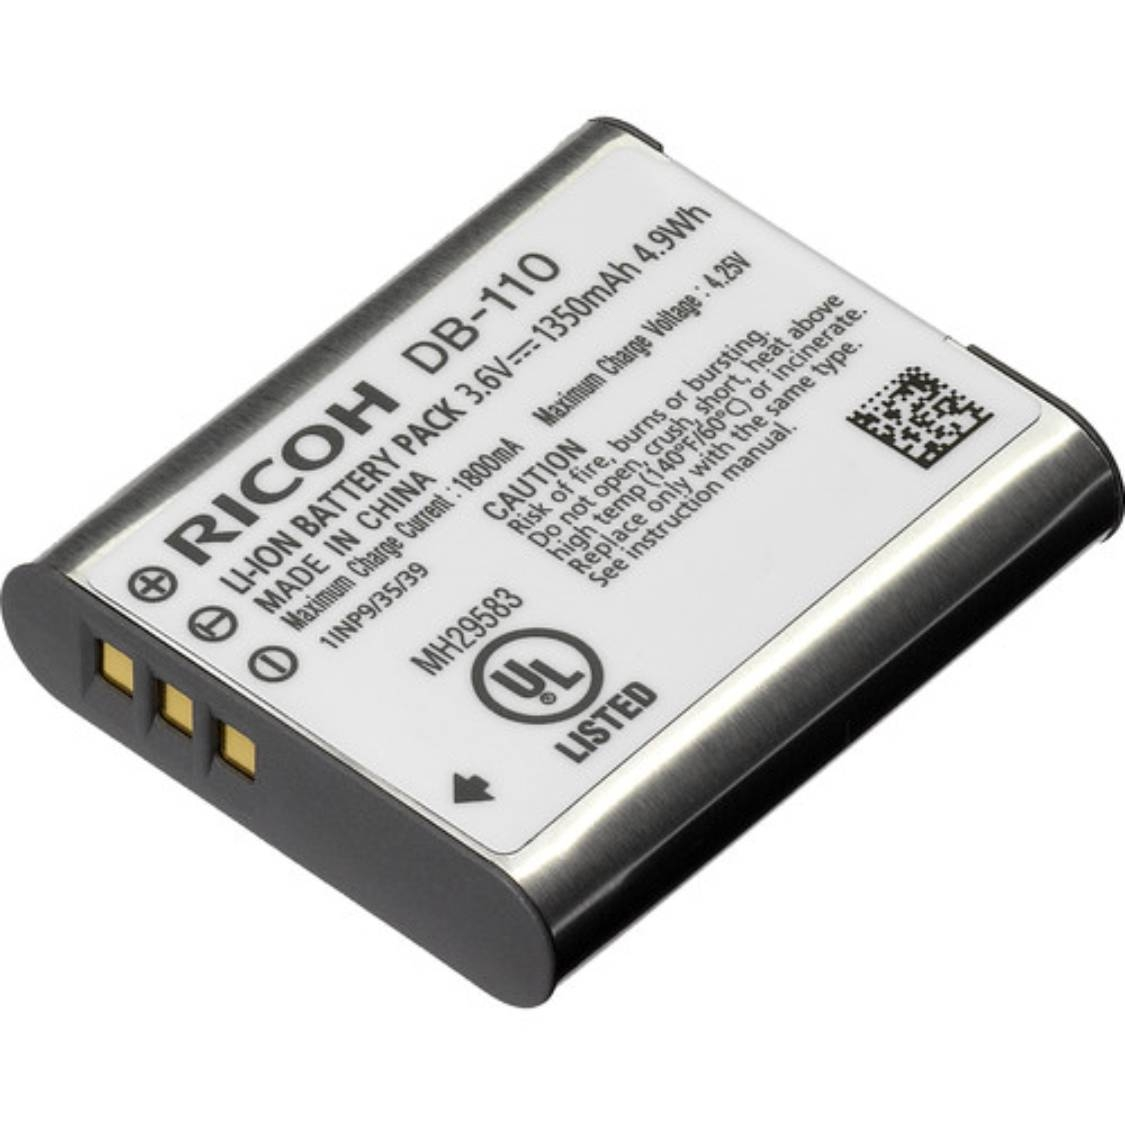 Ricoh DB-110 Battery for GR III